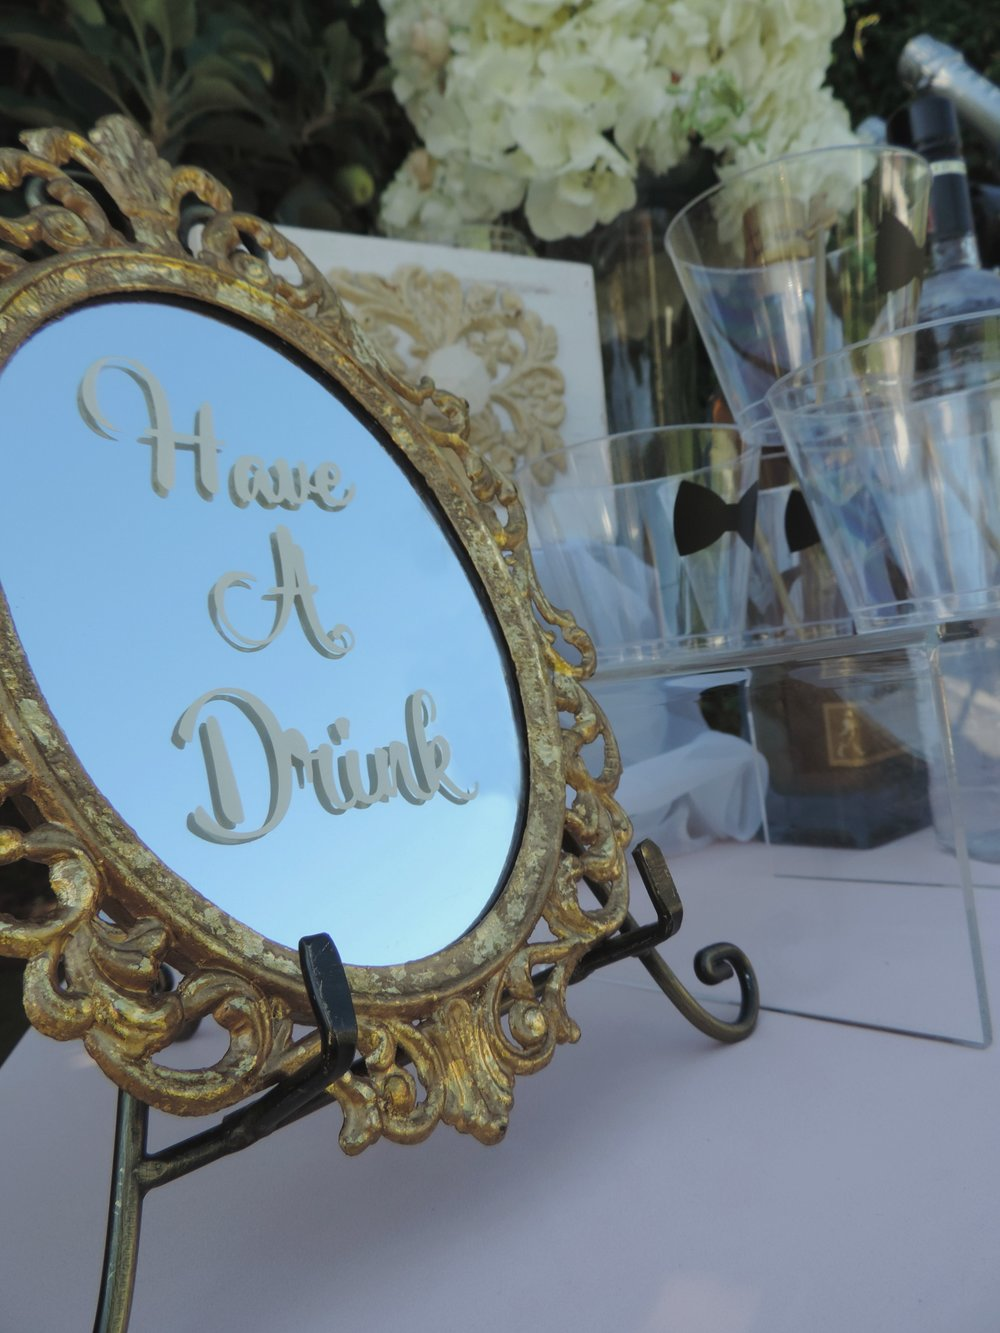 Wedding Mirror art-Wedding decor-Wedding ideas-Wedding signs-Wedding Drink Station-Garden Wedding-Bckyard wedding-summer wedding-www.SugarPartiesLA.com.jpg